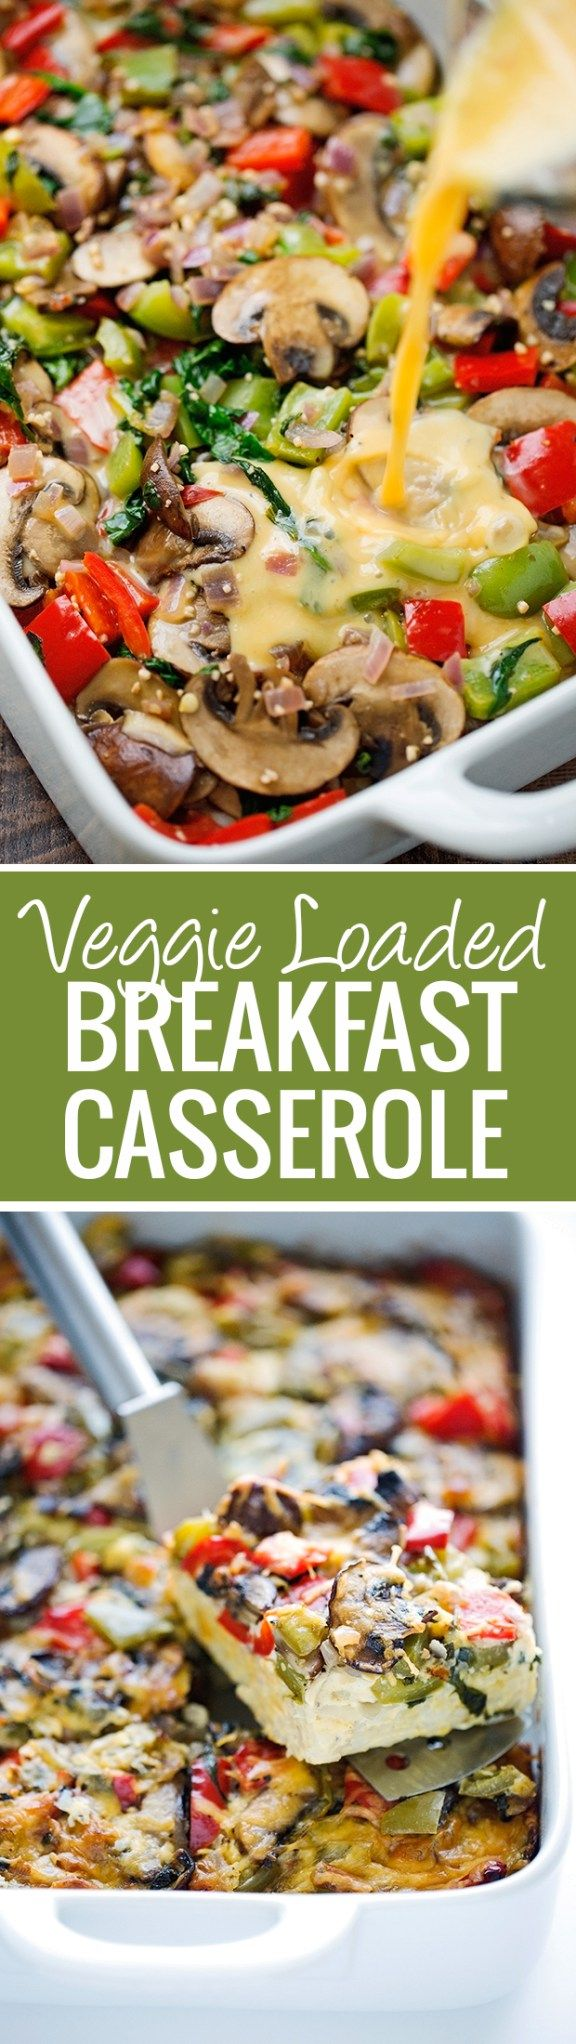 Veggie Loaded Breakfast Casserole - made with hash browns and lots of veggies Littlespicejar.com @littlepsicejar